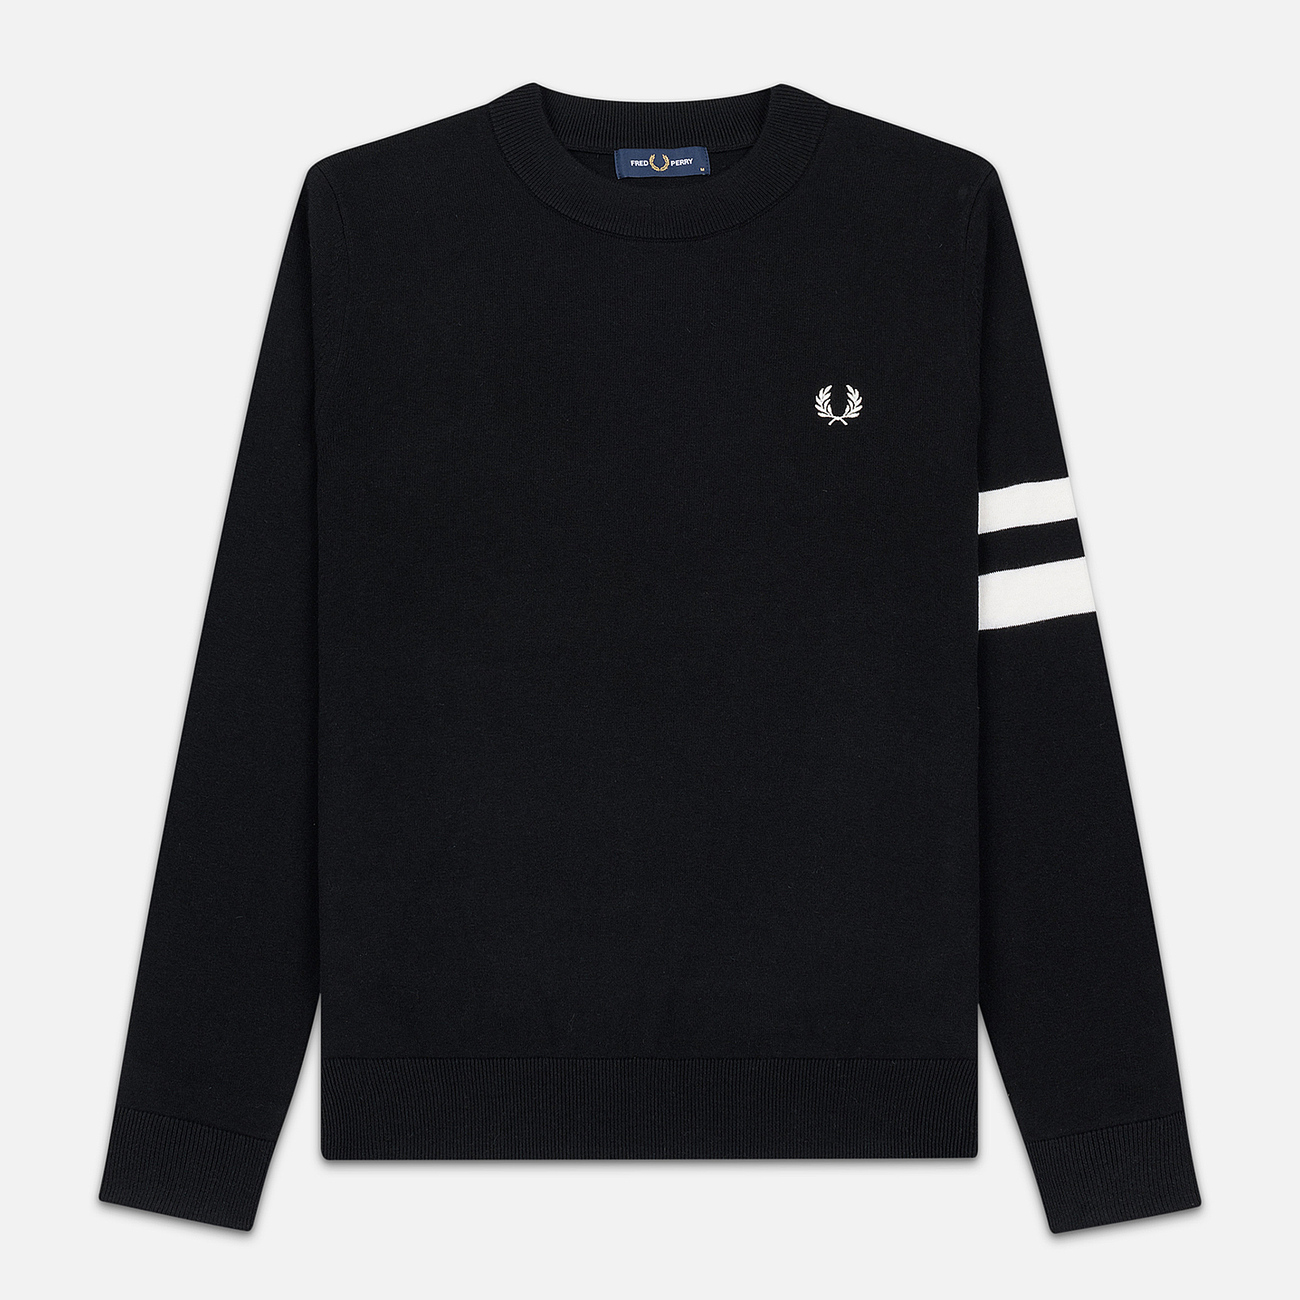 Мужской свитер Fred Perry Tipped Sleeve Crew Neck Black